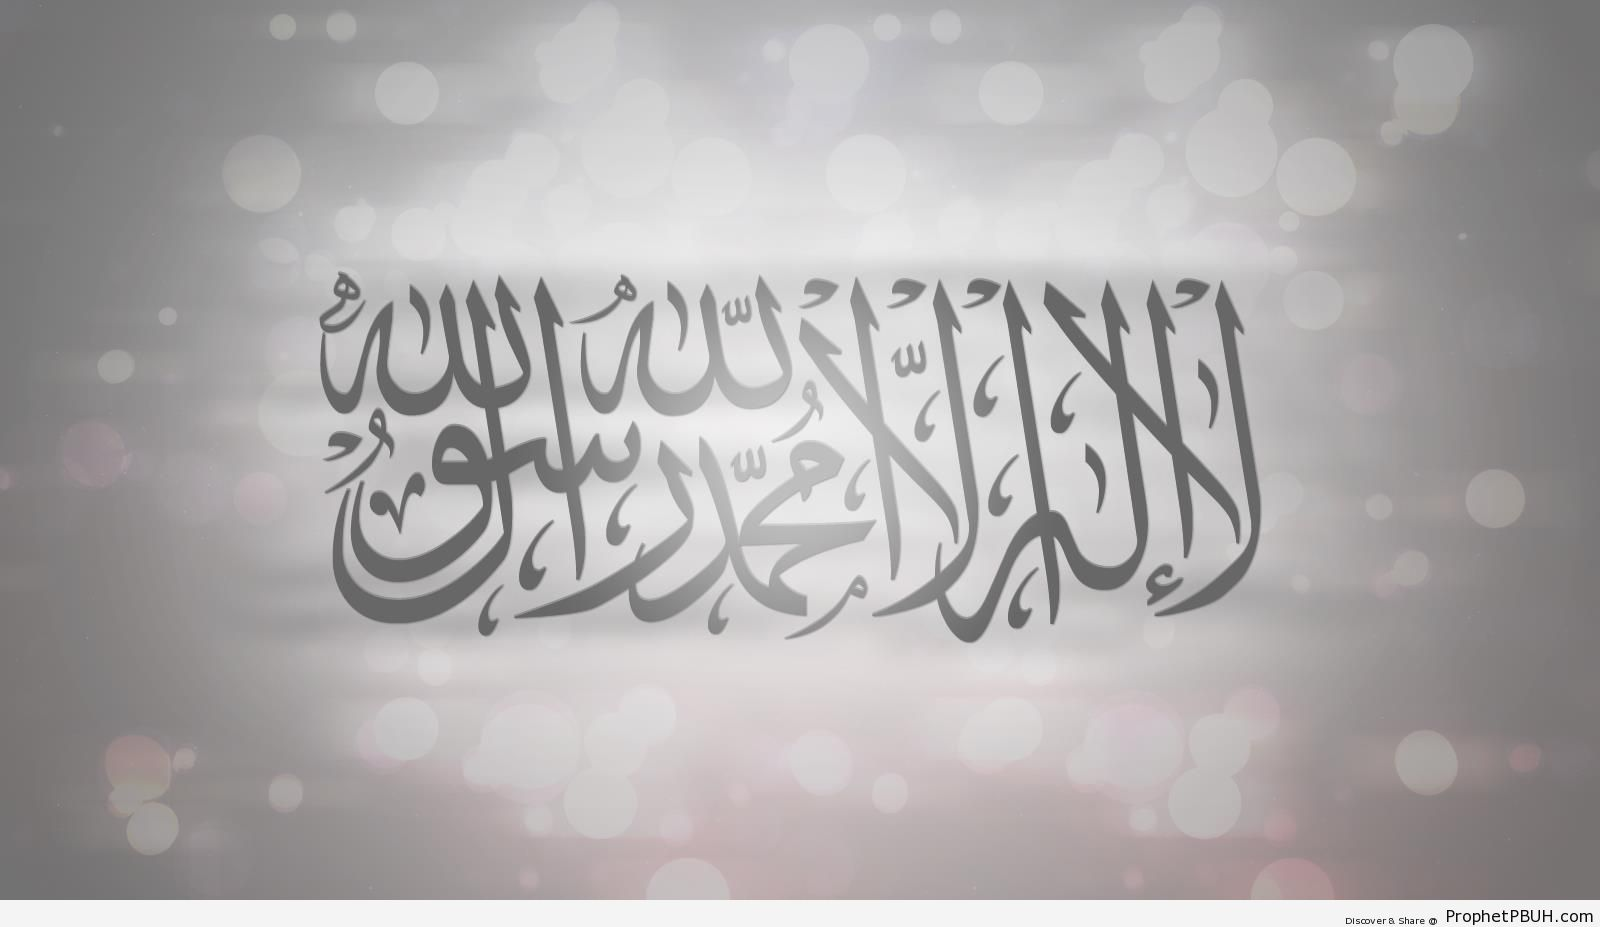 Shahadah Calligraphy Wallpaper - Islamic 1600 x 900 Wallpapers